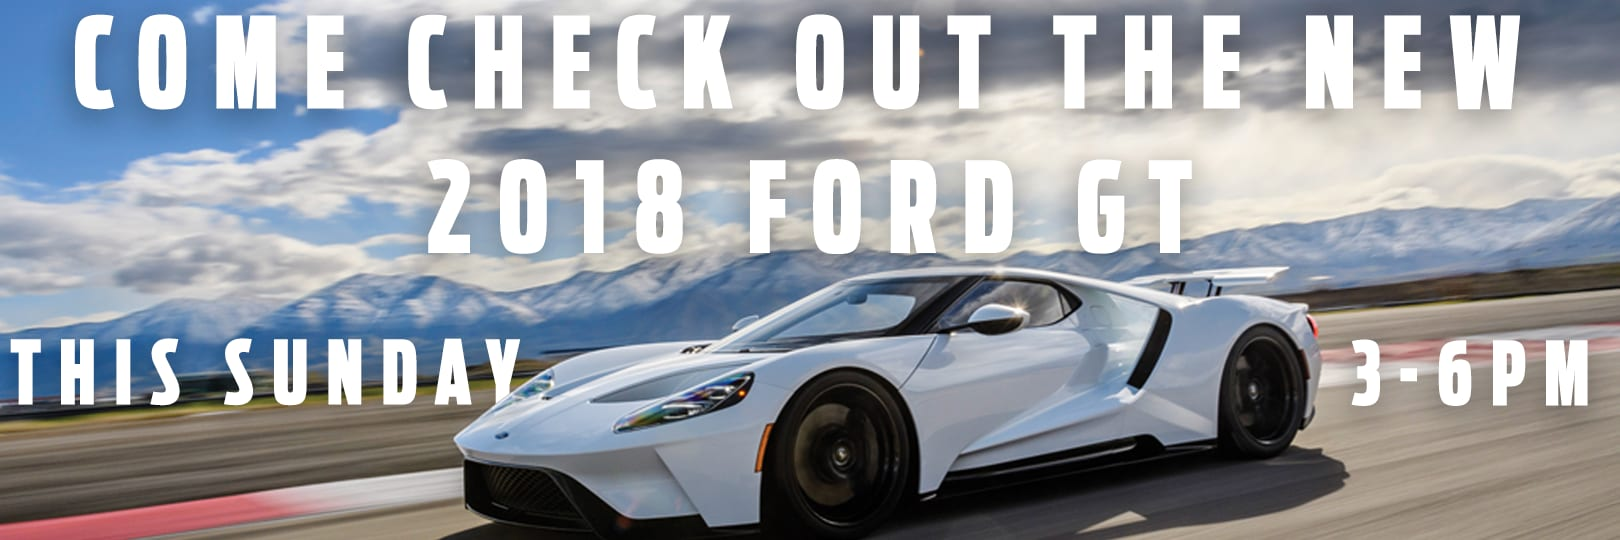 Encinitas Ford Is Very Proud To Be Selected As The Dealership To Display The All New  Ford Gt Come See This All American Automotive Icon That Has